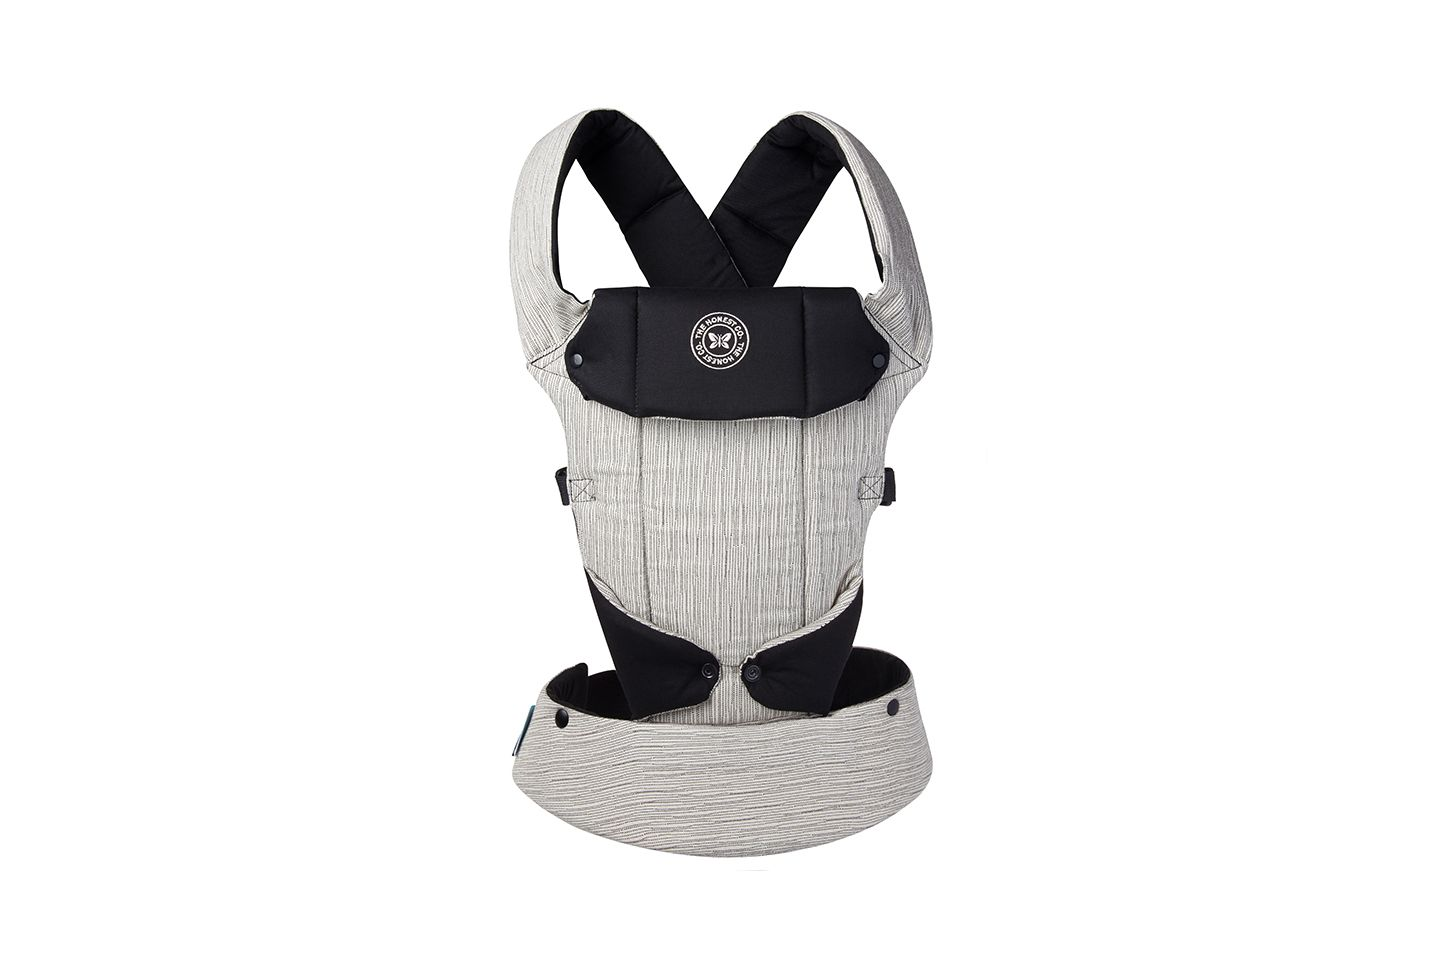 4e5f69a0a2f The Honest Company - 4-in-1 Baby Carrier